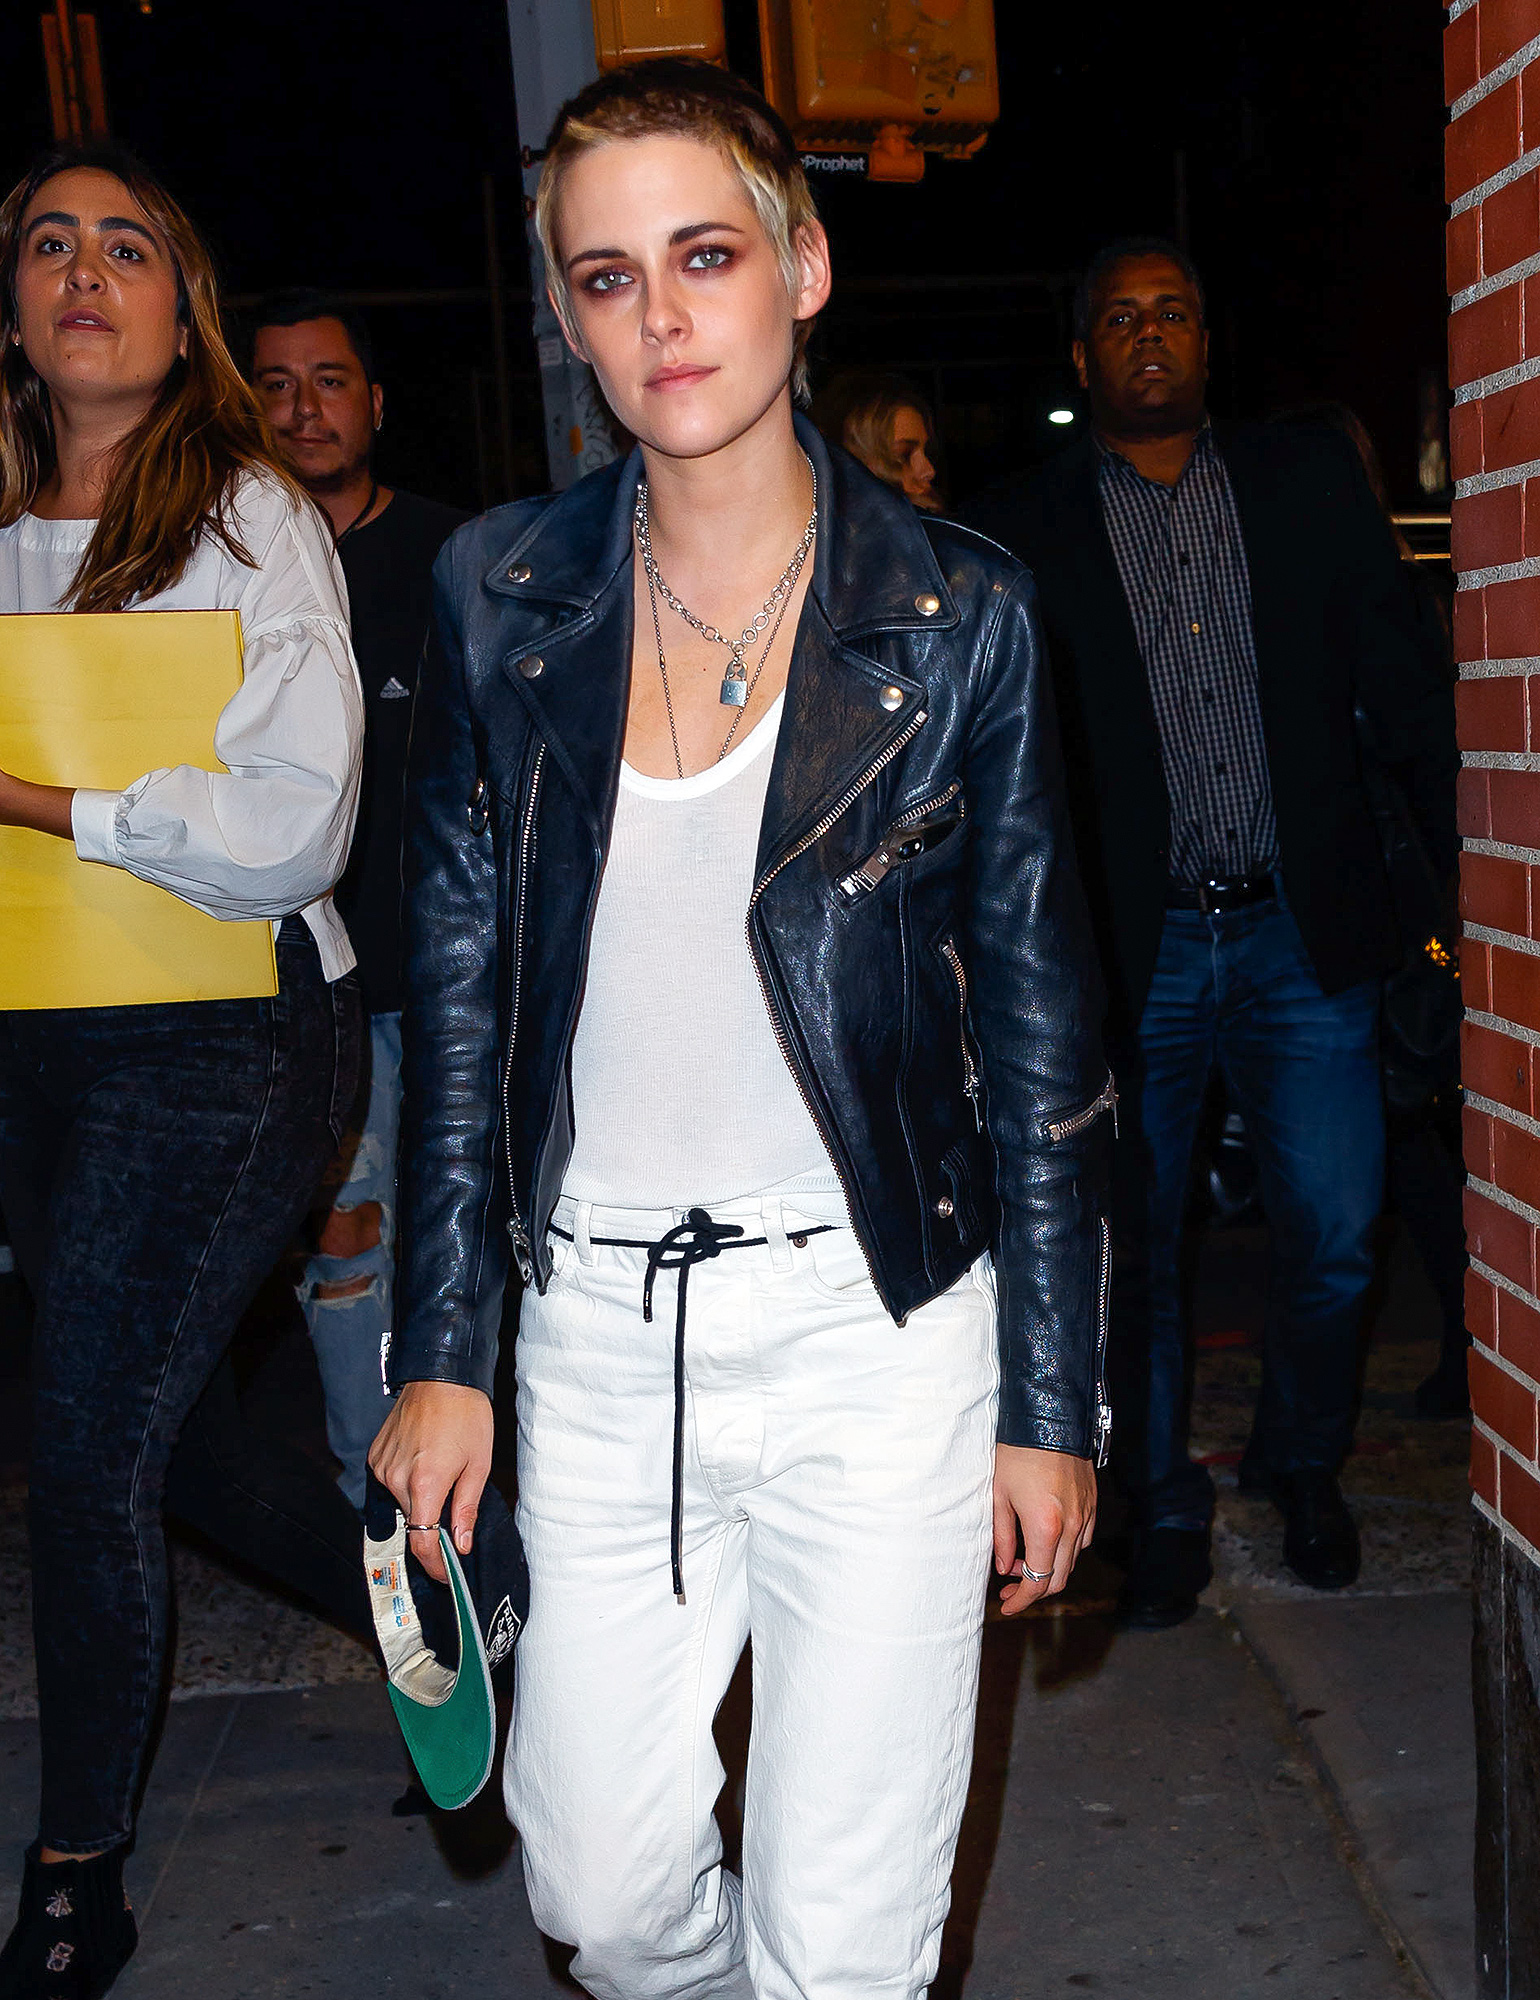 EXCLUSIVE: Kristen Stewart poses for photos on a street corner in New York with girlfriend Stella Maxwell in the background